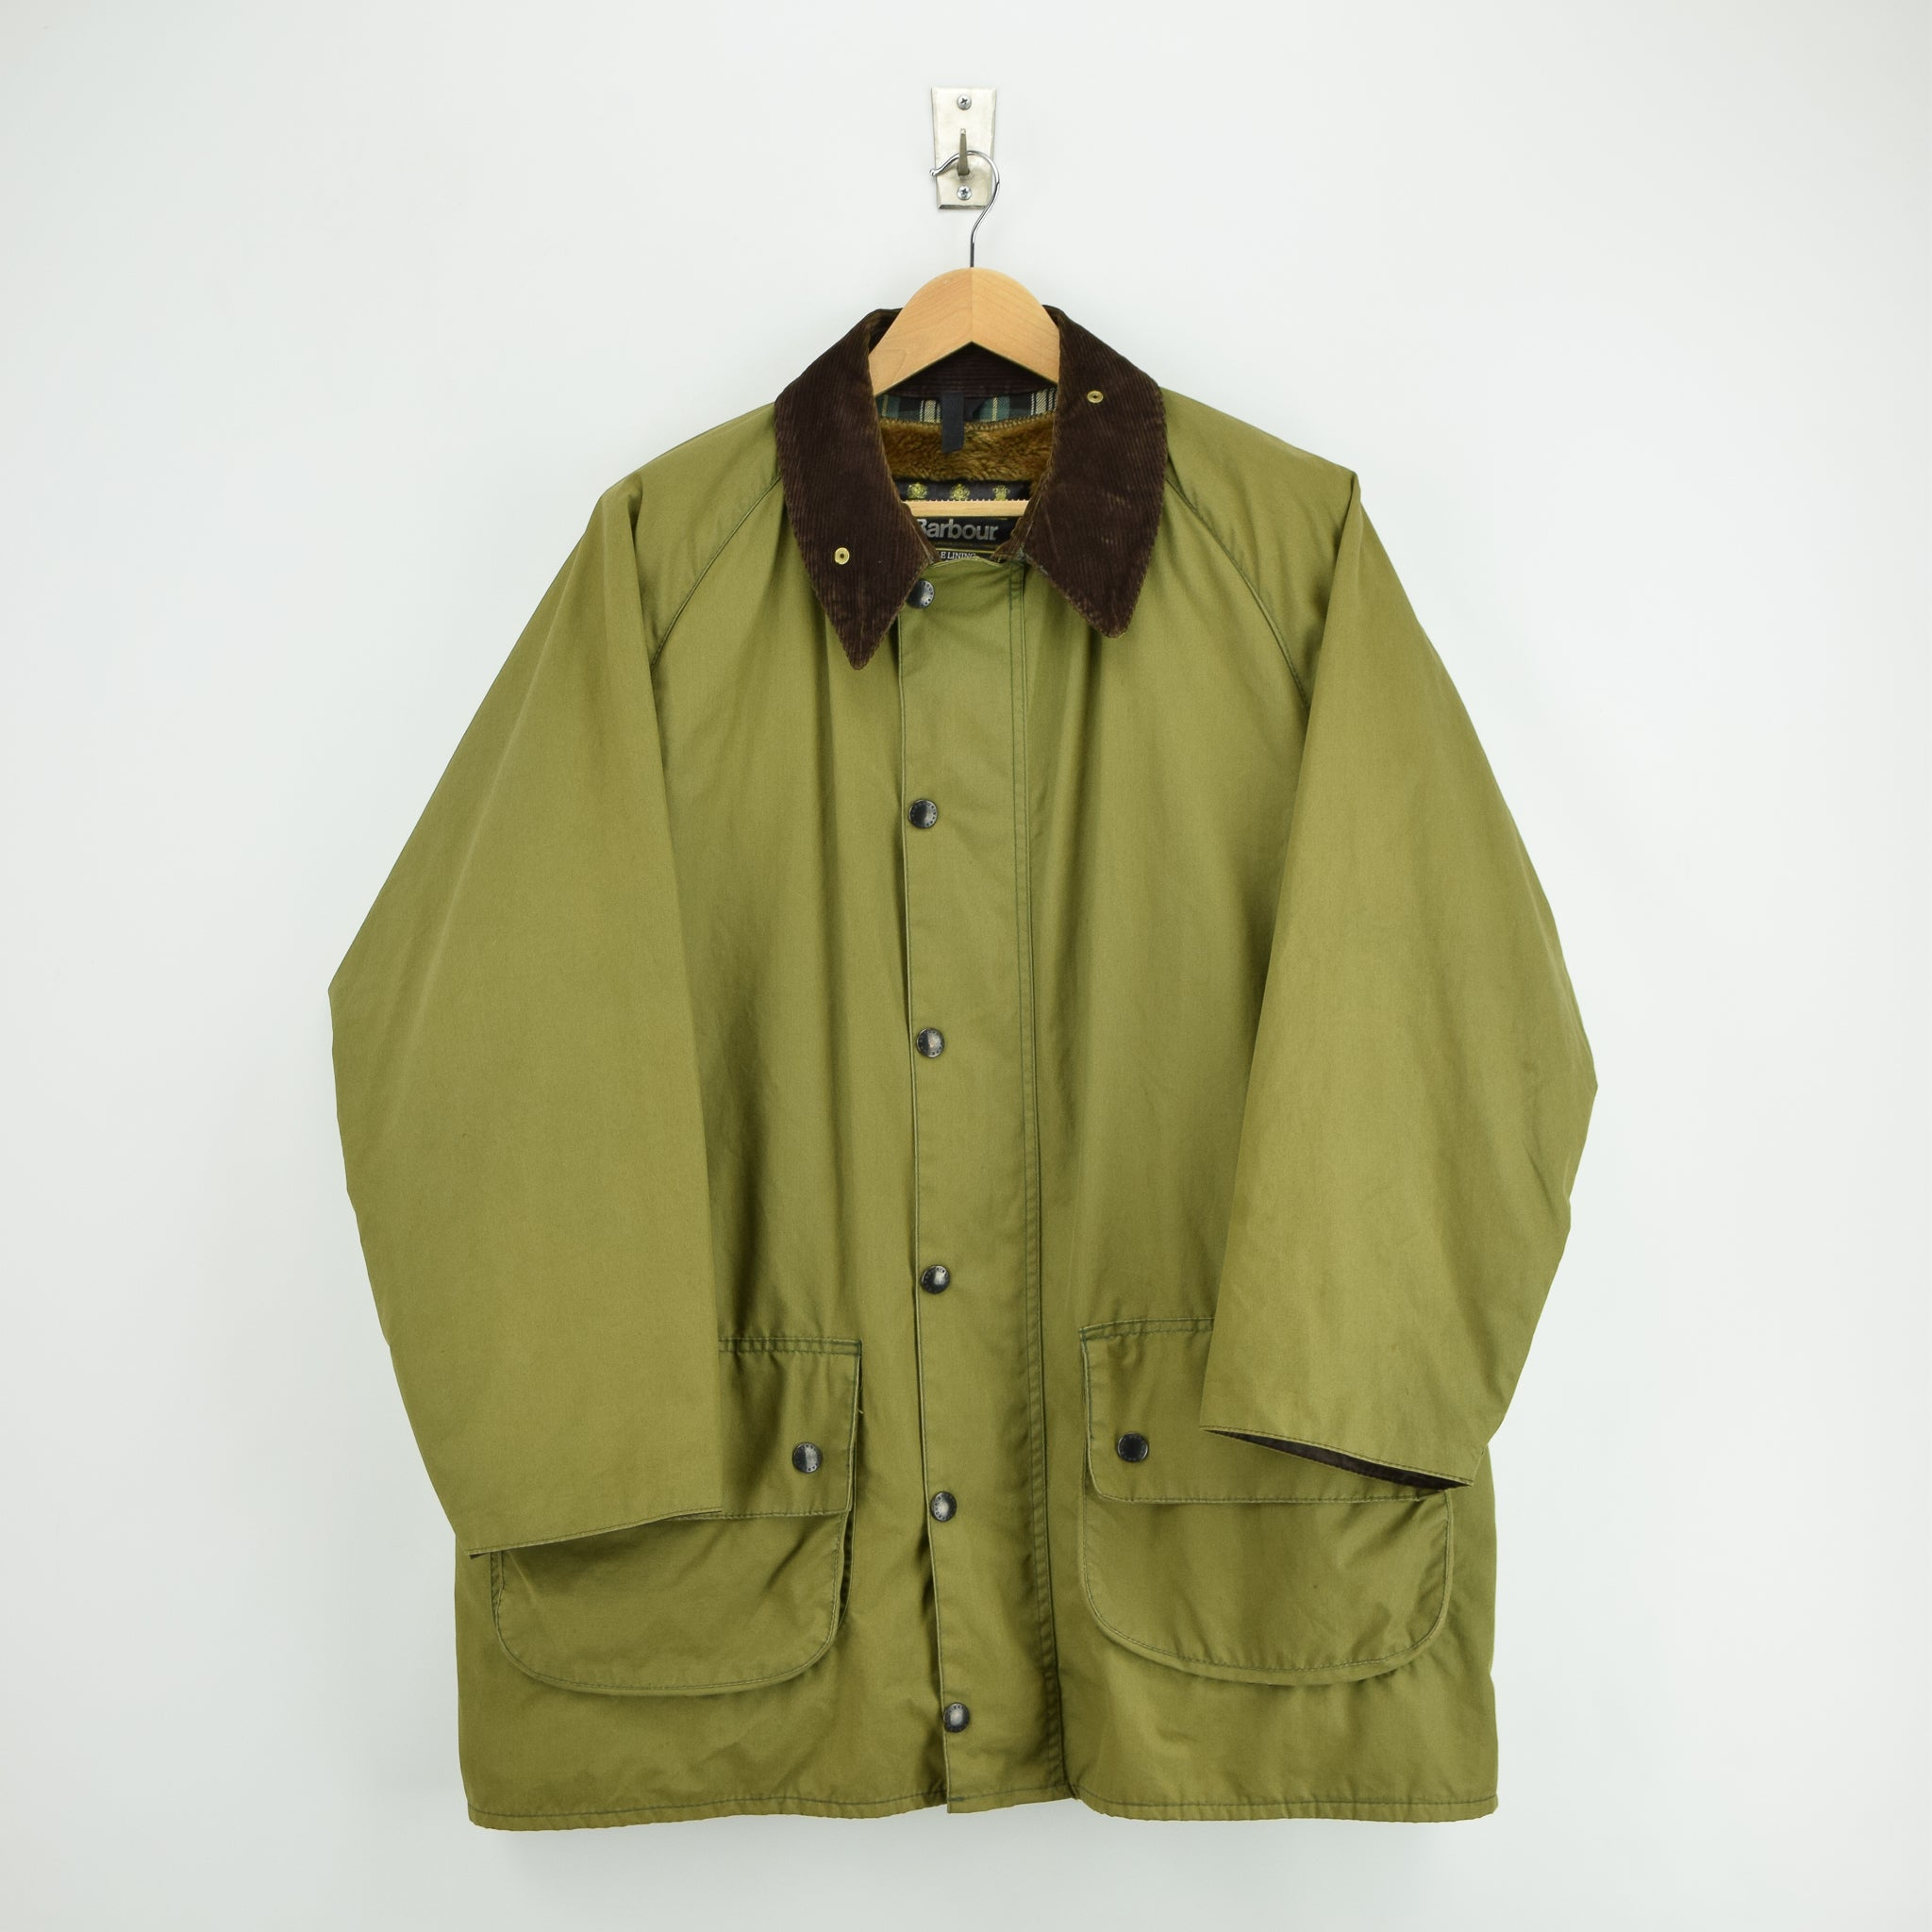 Vintage Barbour Gamefair Green Jacket Coat Made In England L / XL front